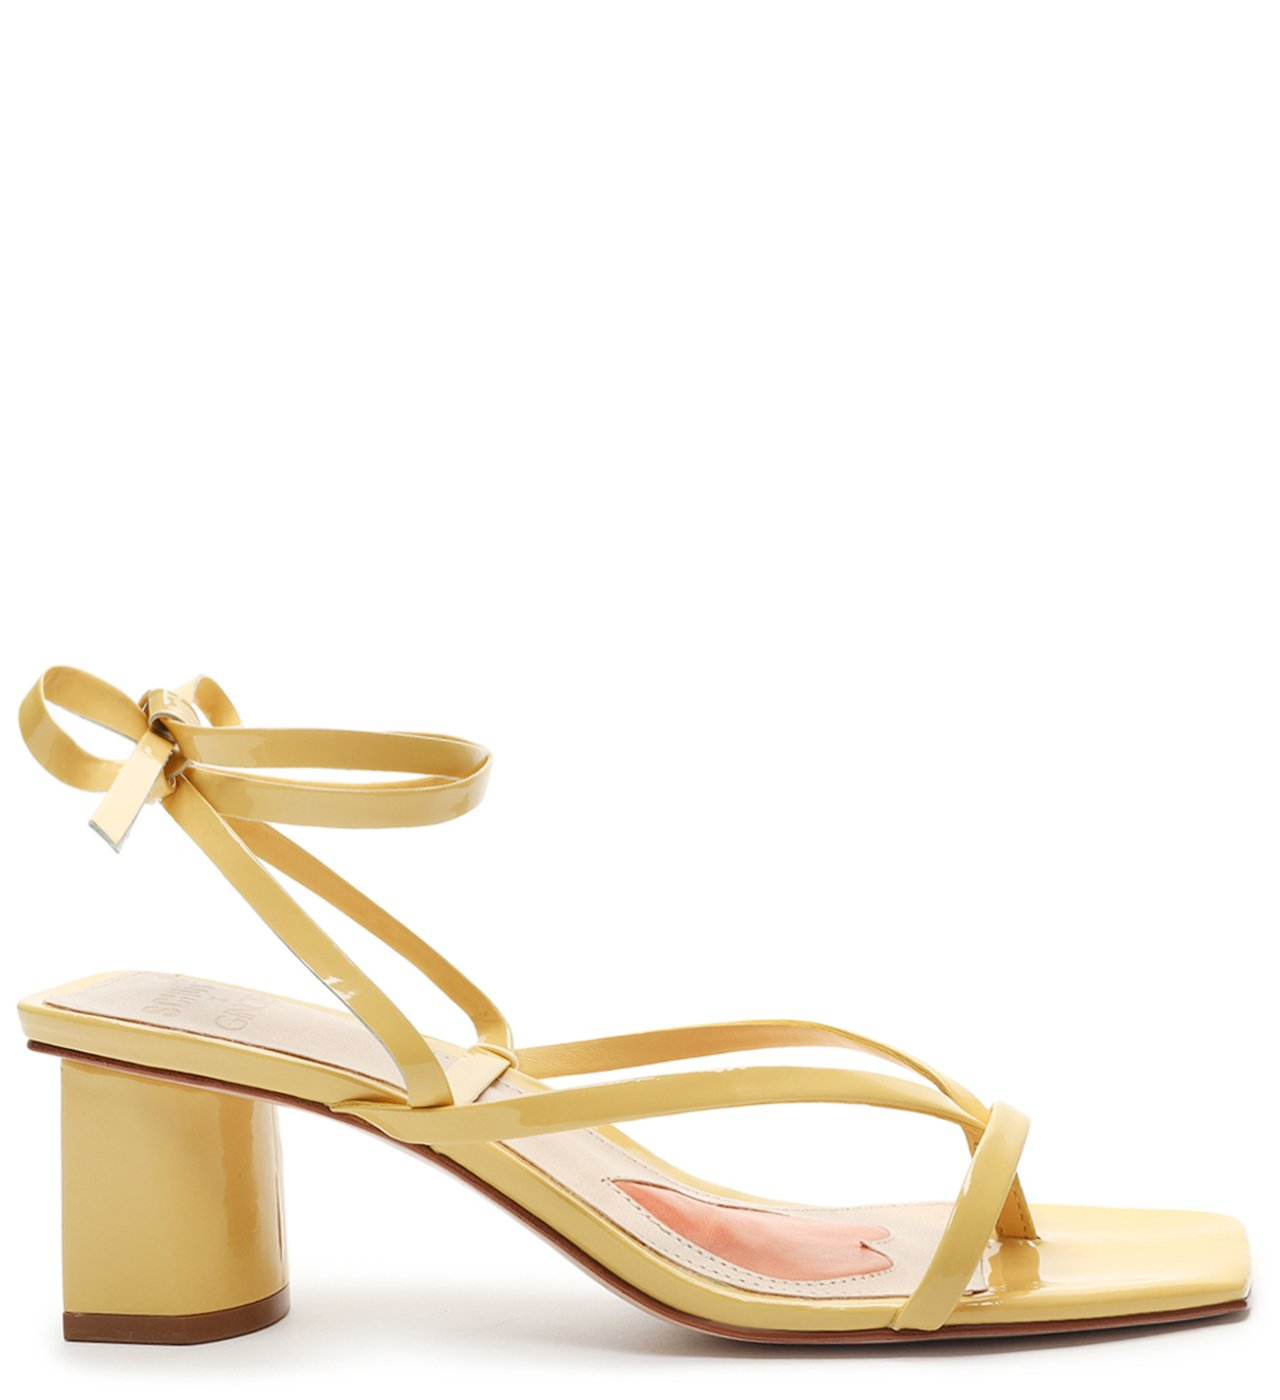 Schutz X Ginger Sandália Block Heel Lace-Up Yellow | Schutz